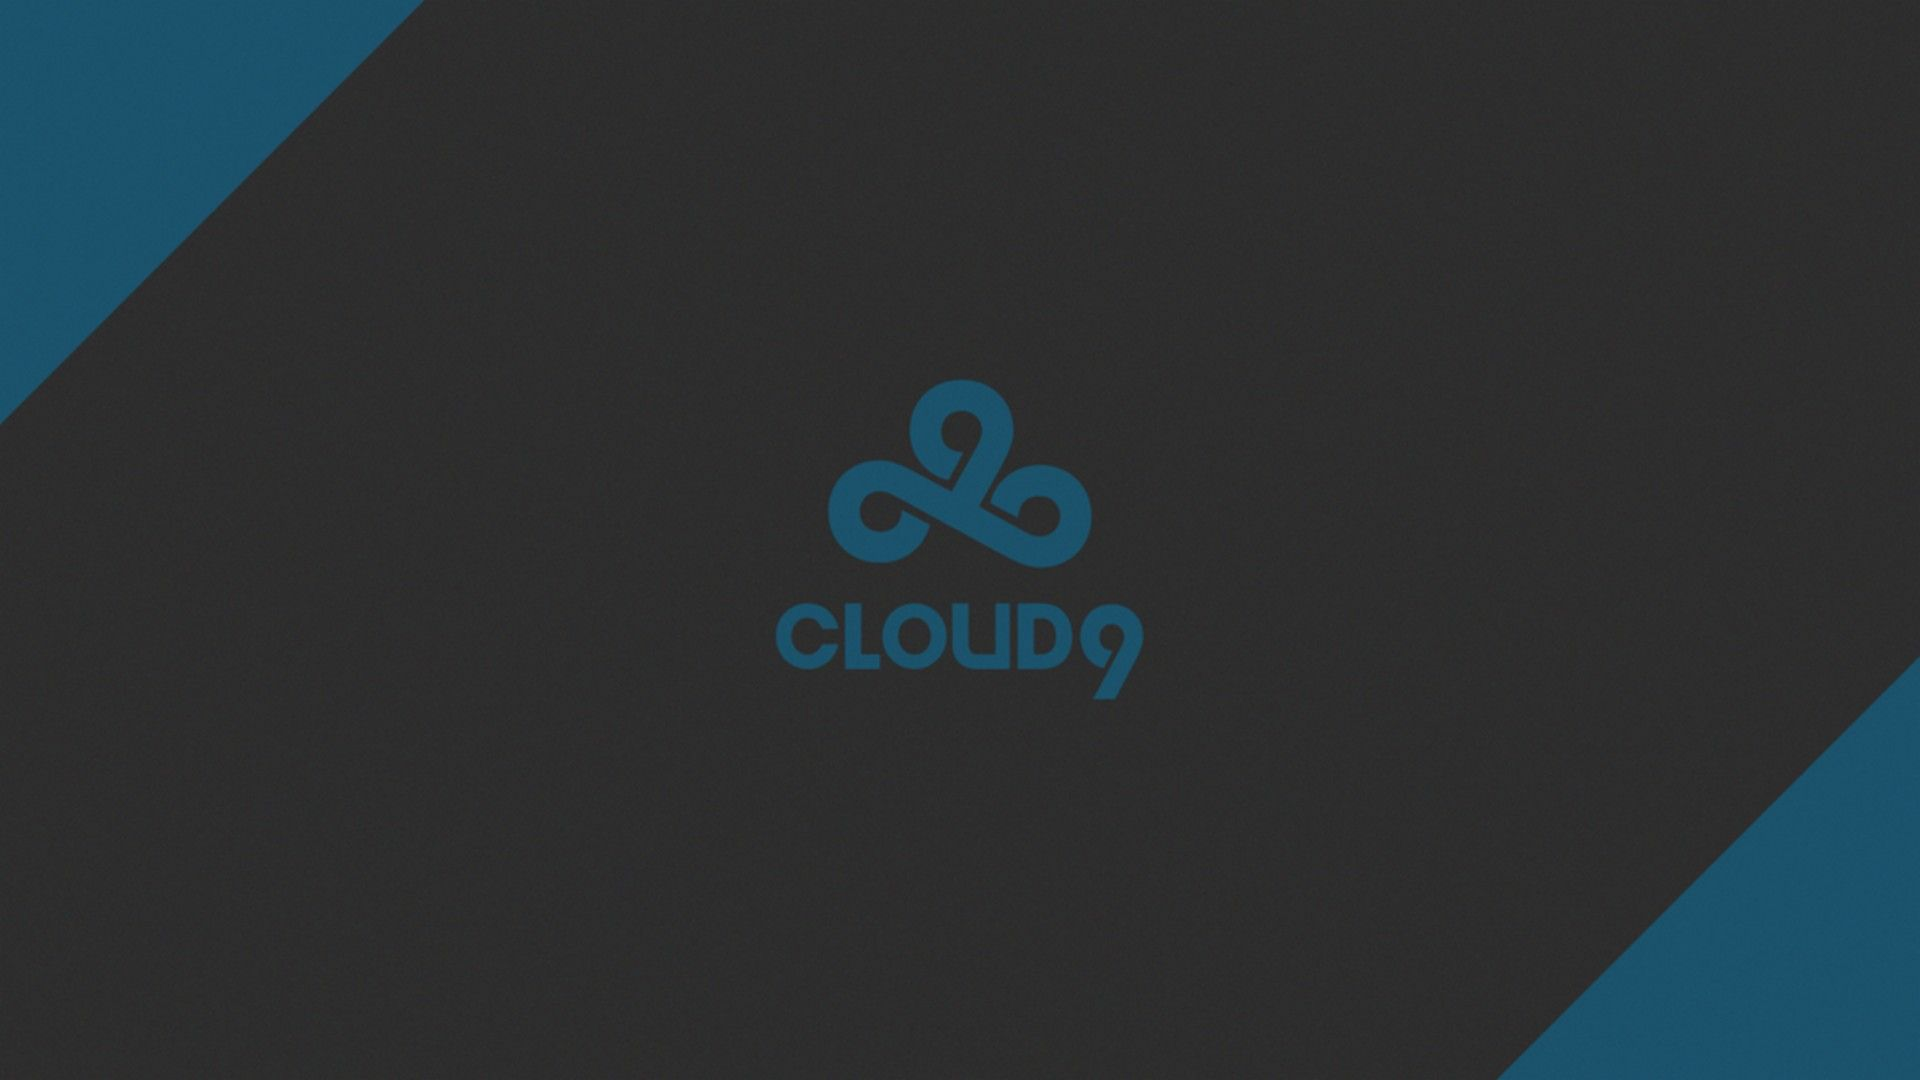 1920x1080 Cloud 9 Games Desktop Wallpaper | Best HD Wallpapers ...